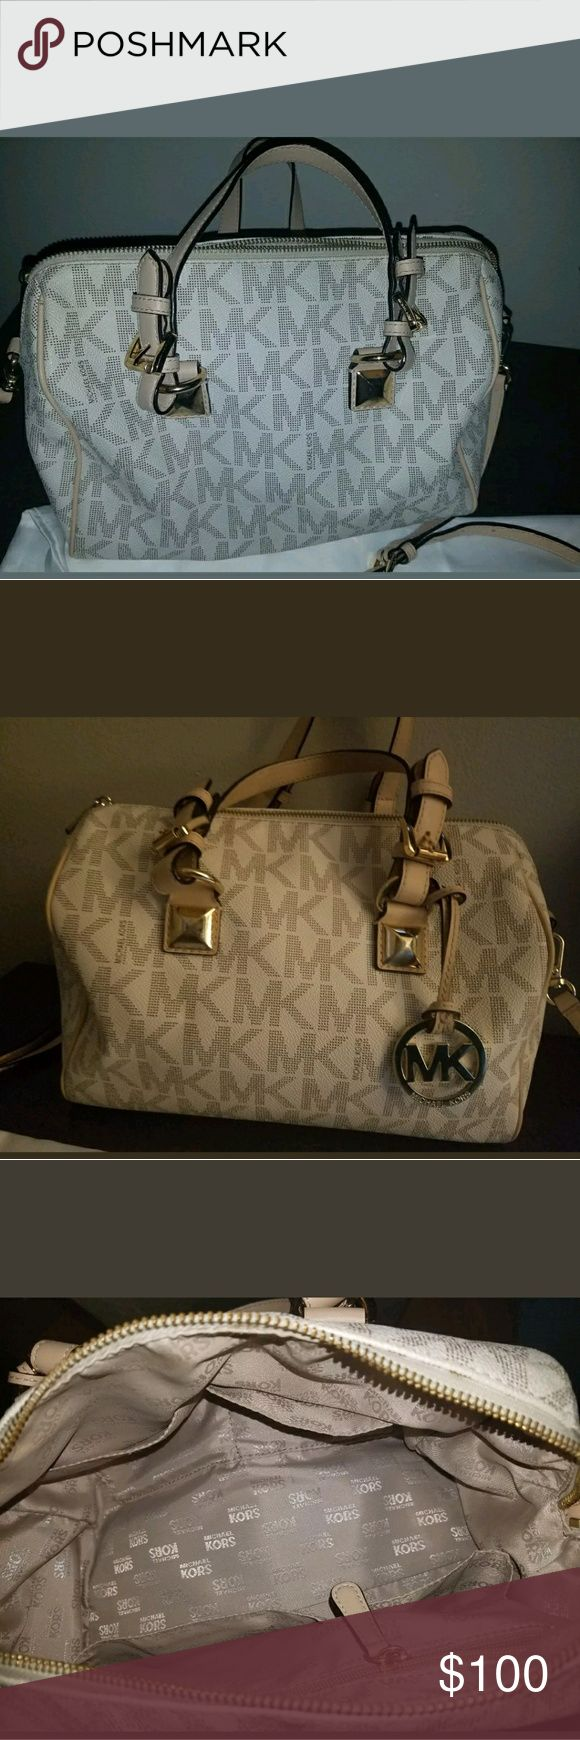 Michael Kors Vanilla Grayson bag Beautiful, great pre owned condition. MK bag. Priced to sell fast. Vanilla with beige leather trim. 9×11. Authentic. Ask questions. See photos. Michael Kors Bags Satchels